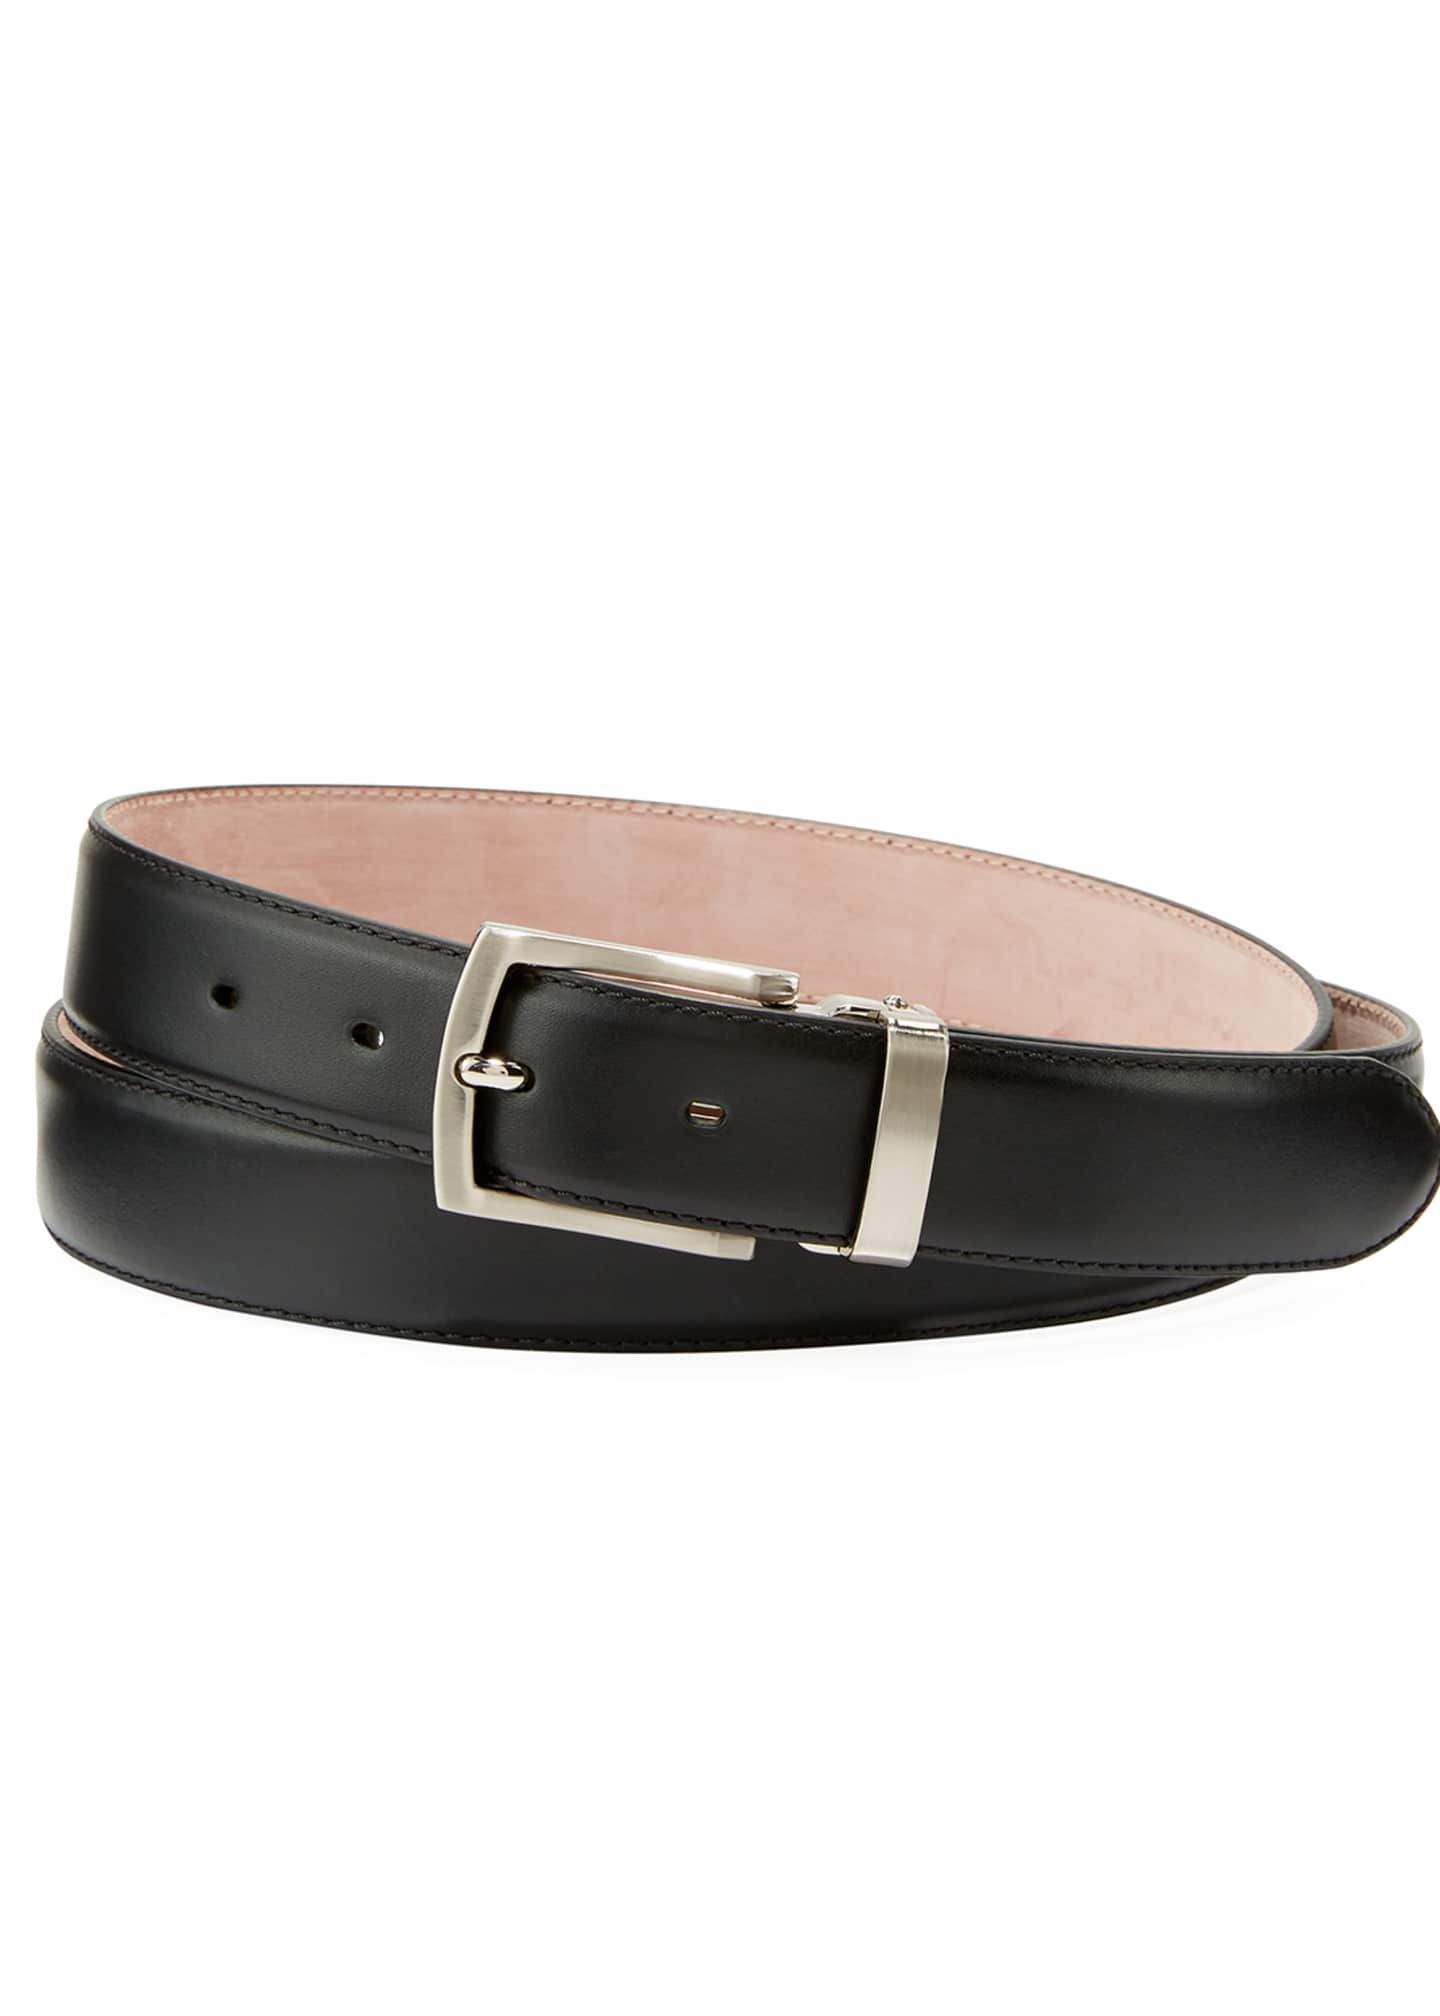 Magnanni for Neiman Marcus Men's Leather Square-Buckle Belt,